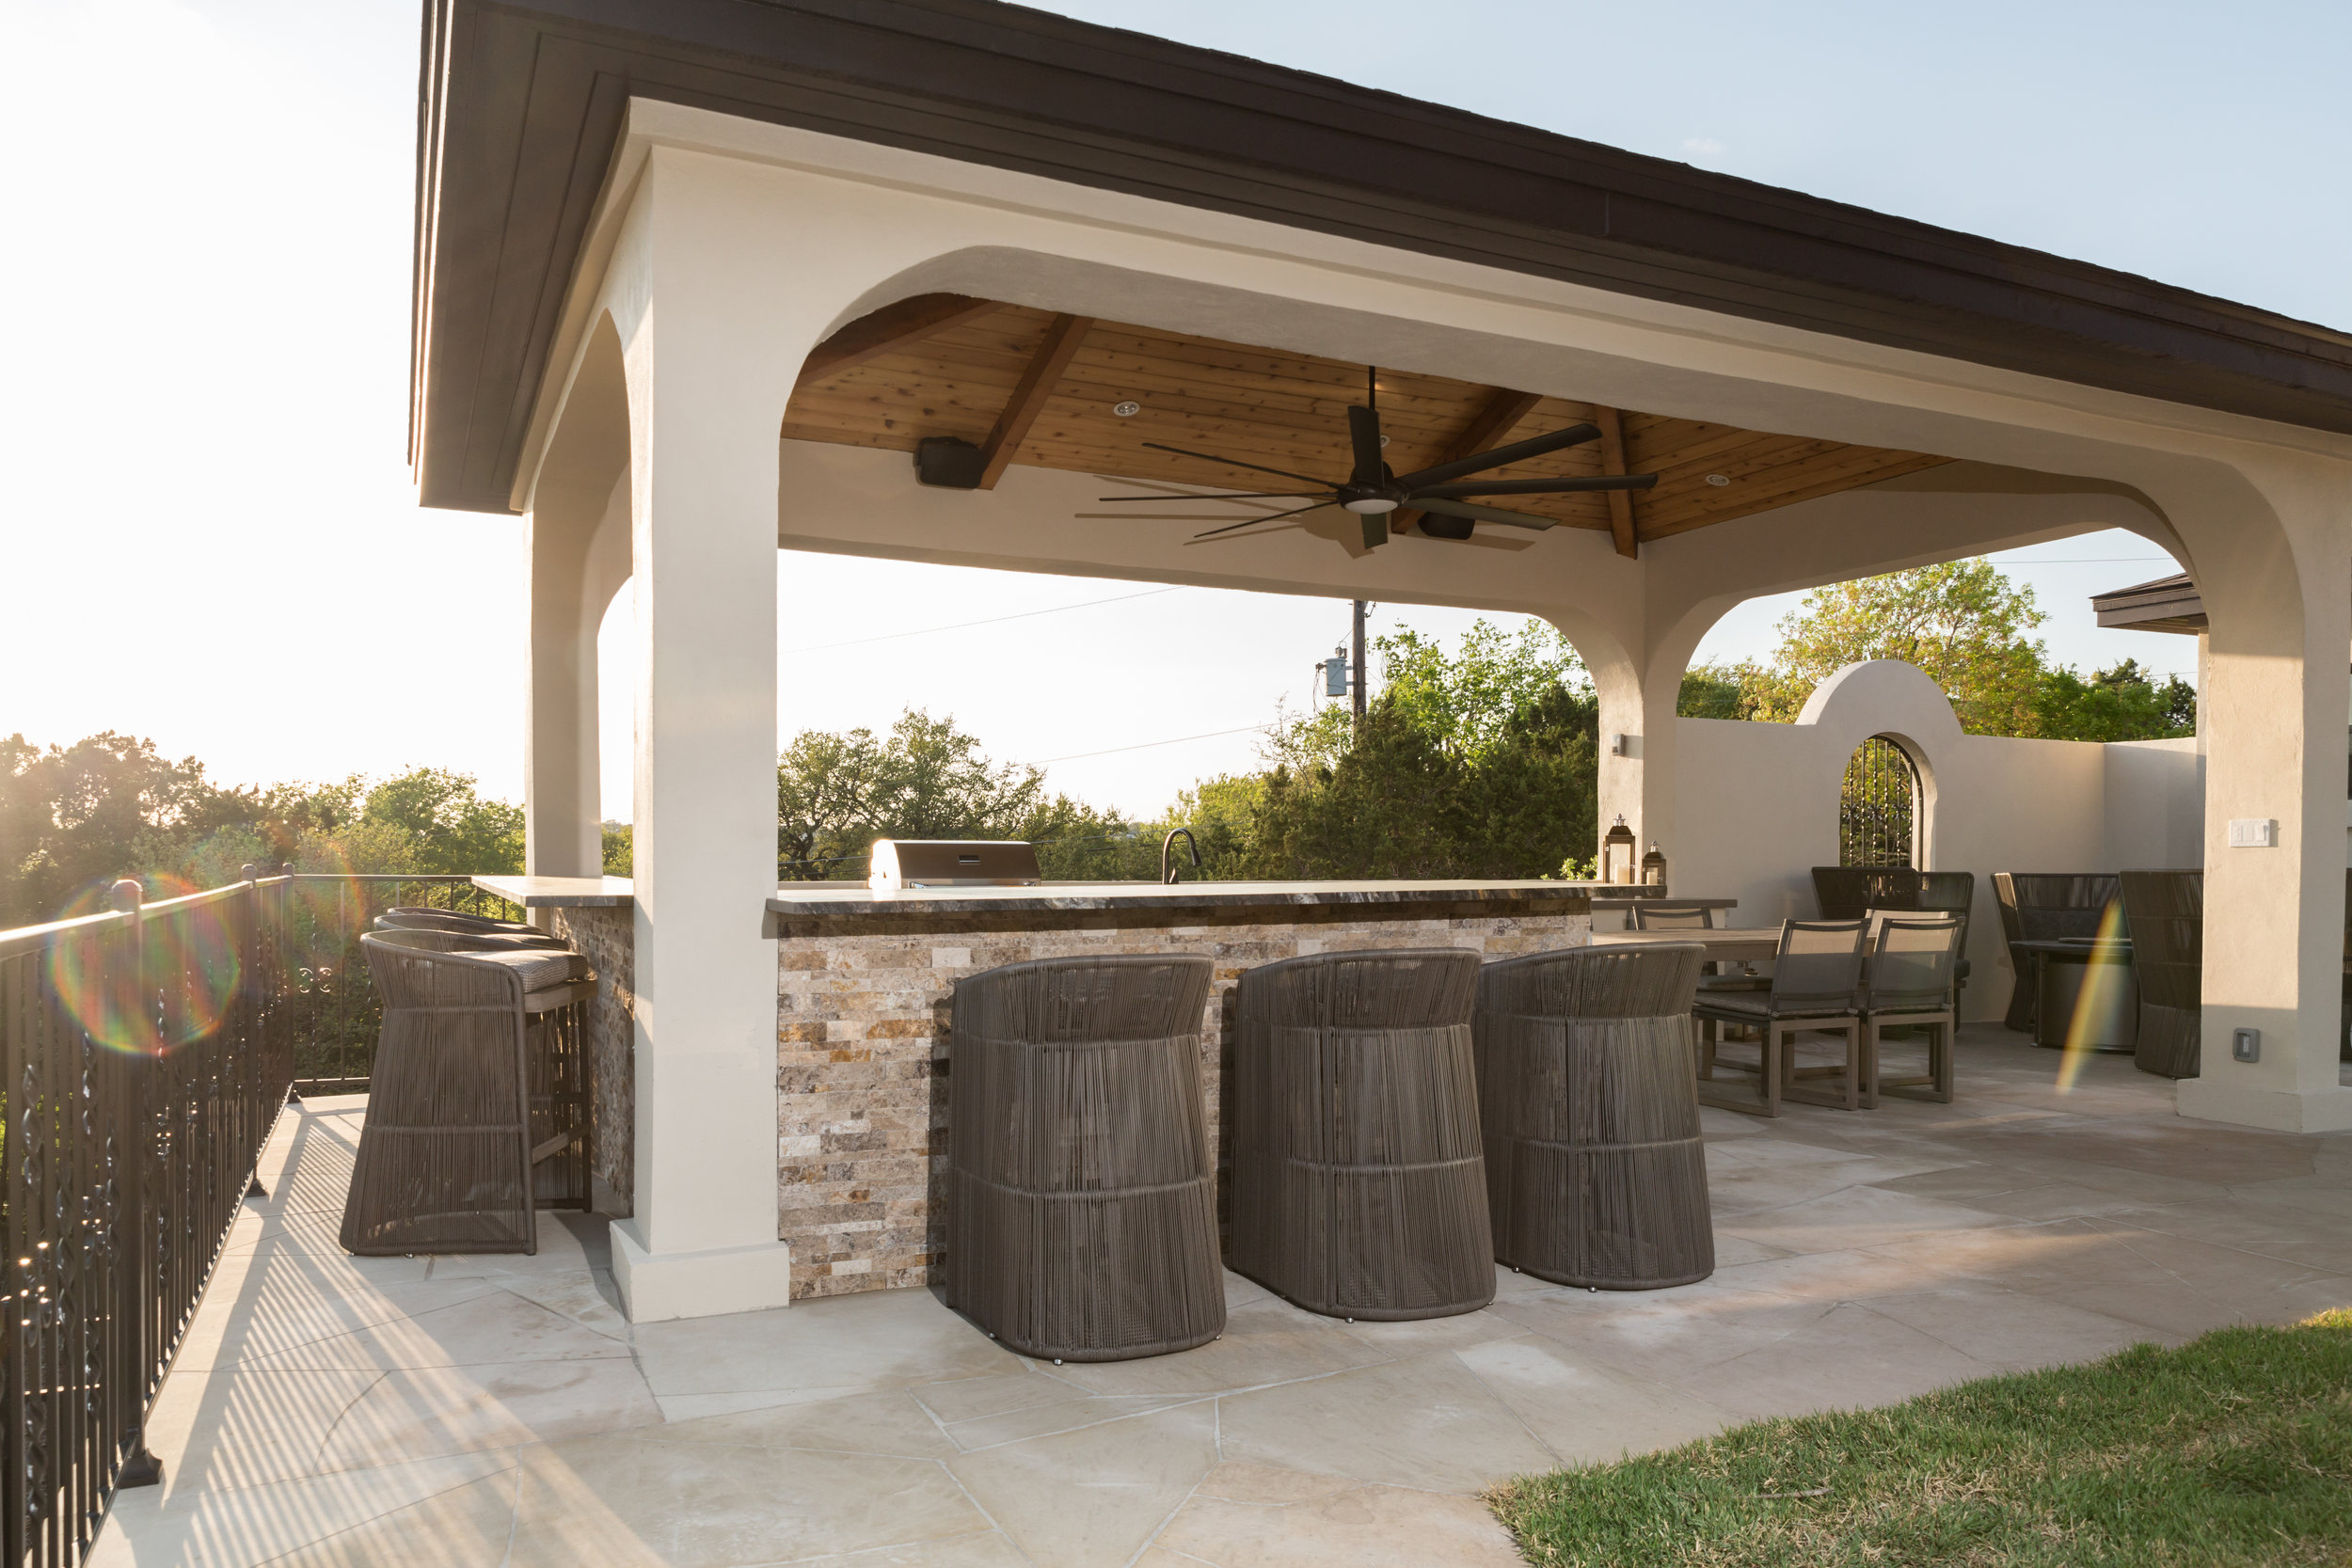 Hill Country Cabana Design